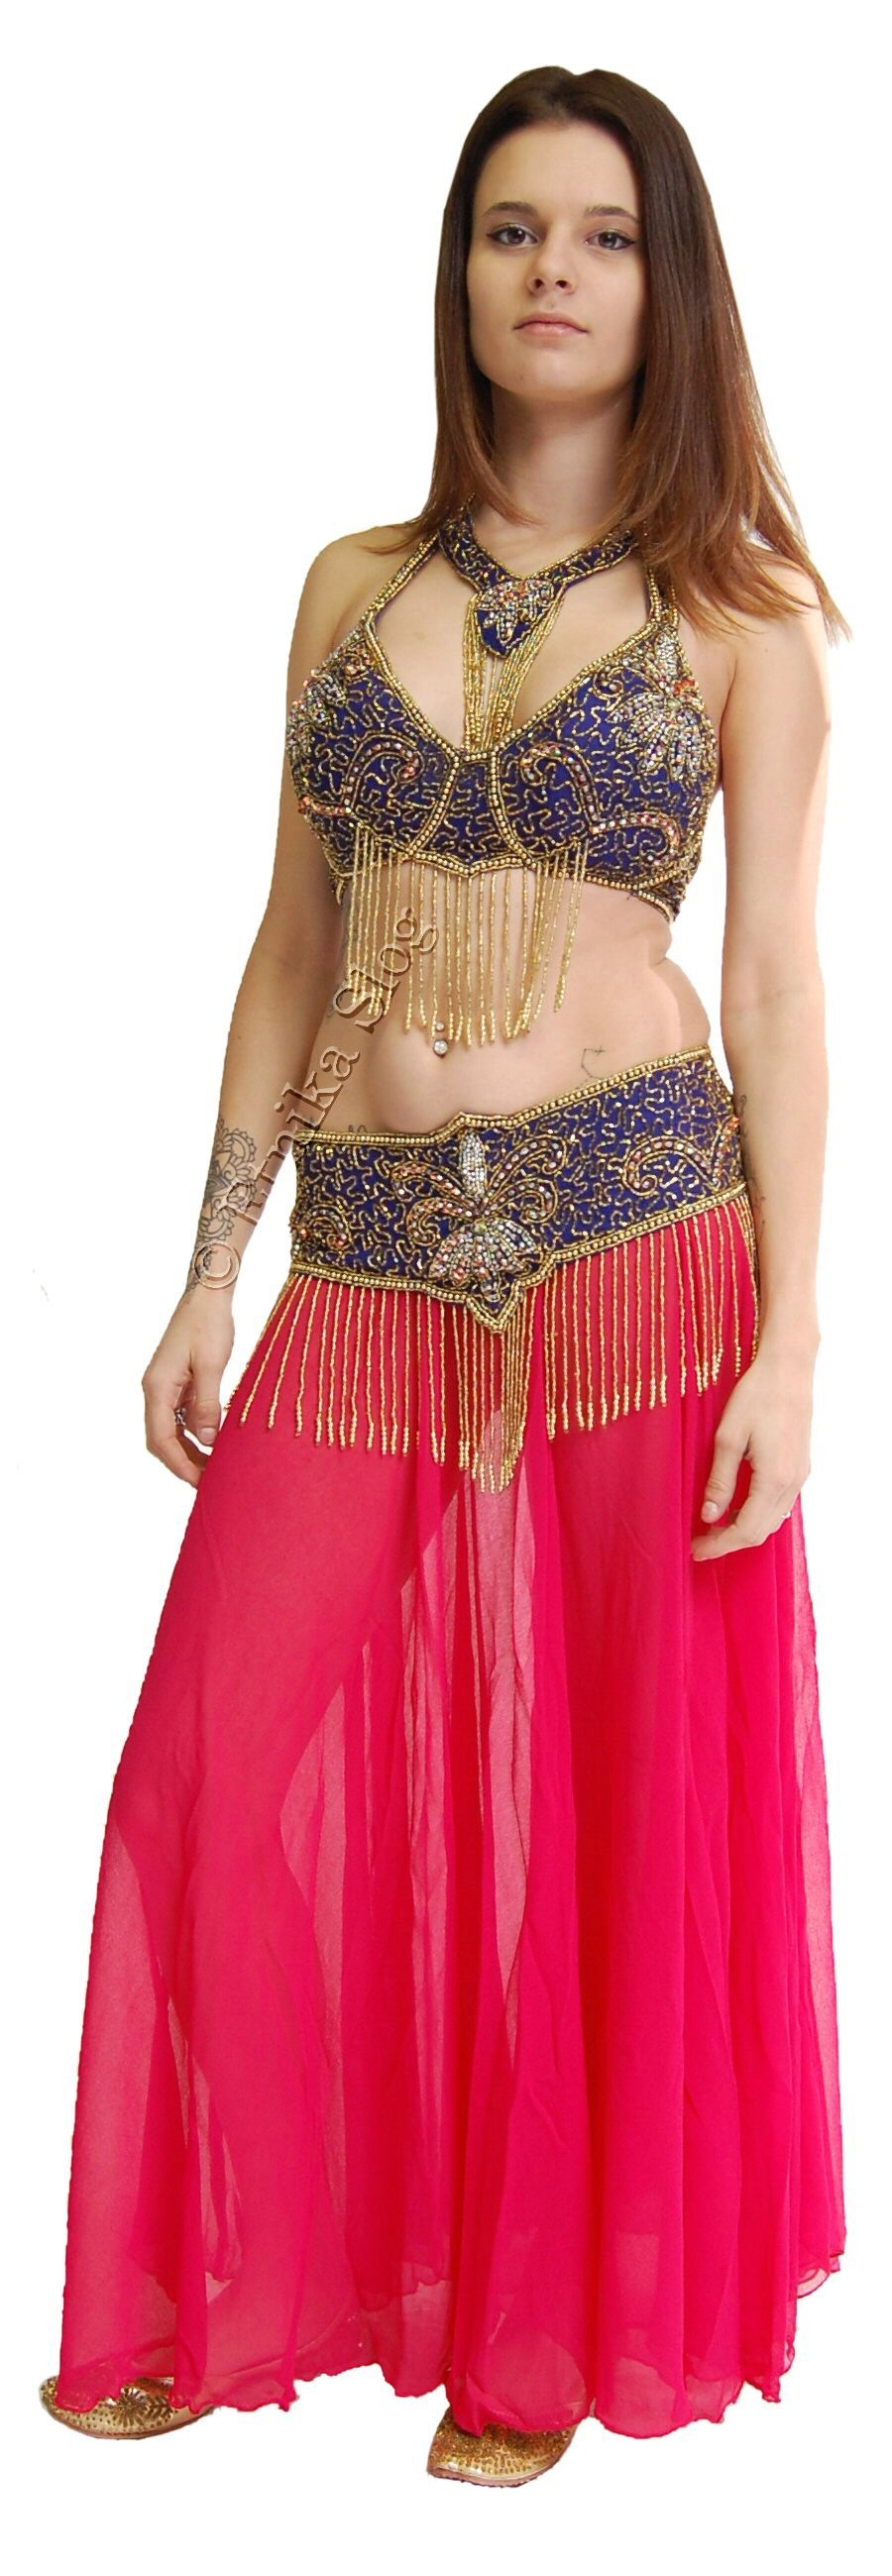 BELLY DANCE - SETS DV-SET24-02 - Oriente Import S.r.l.